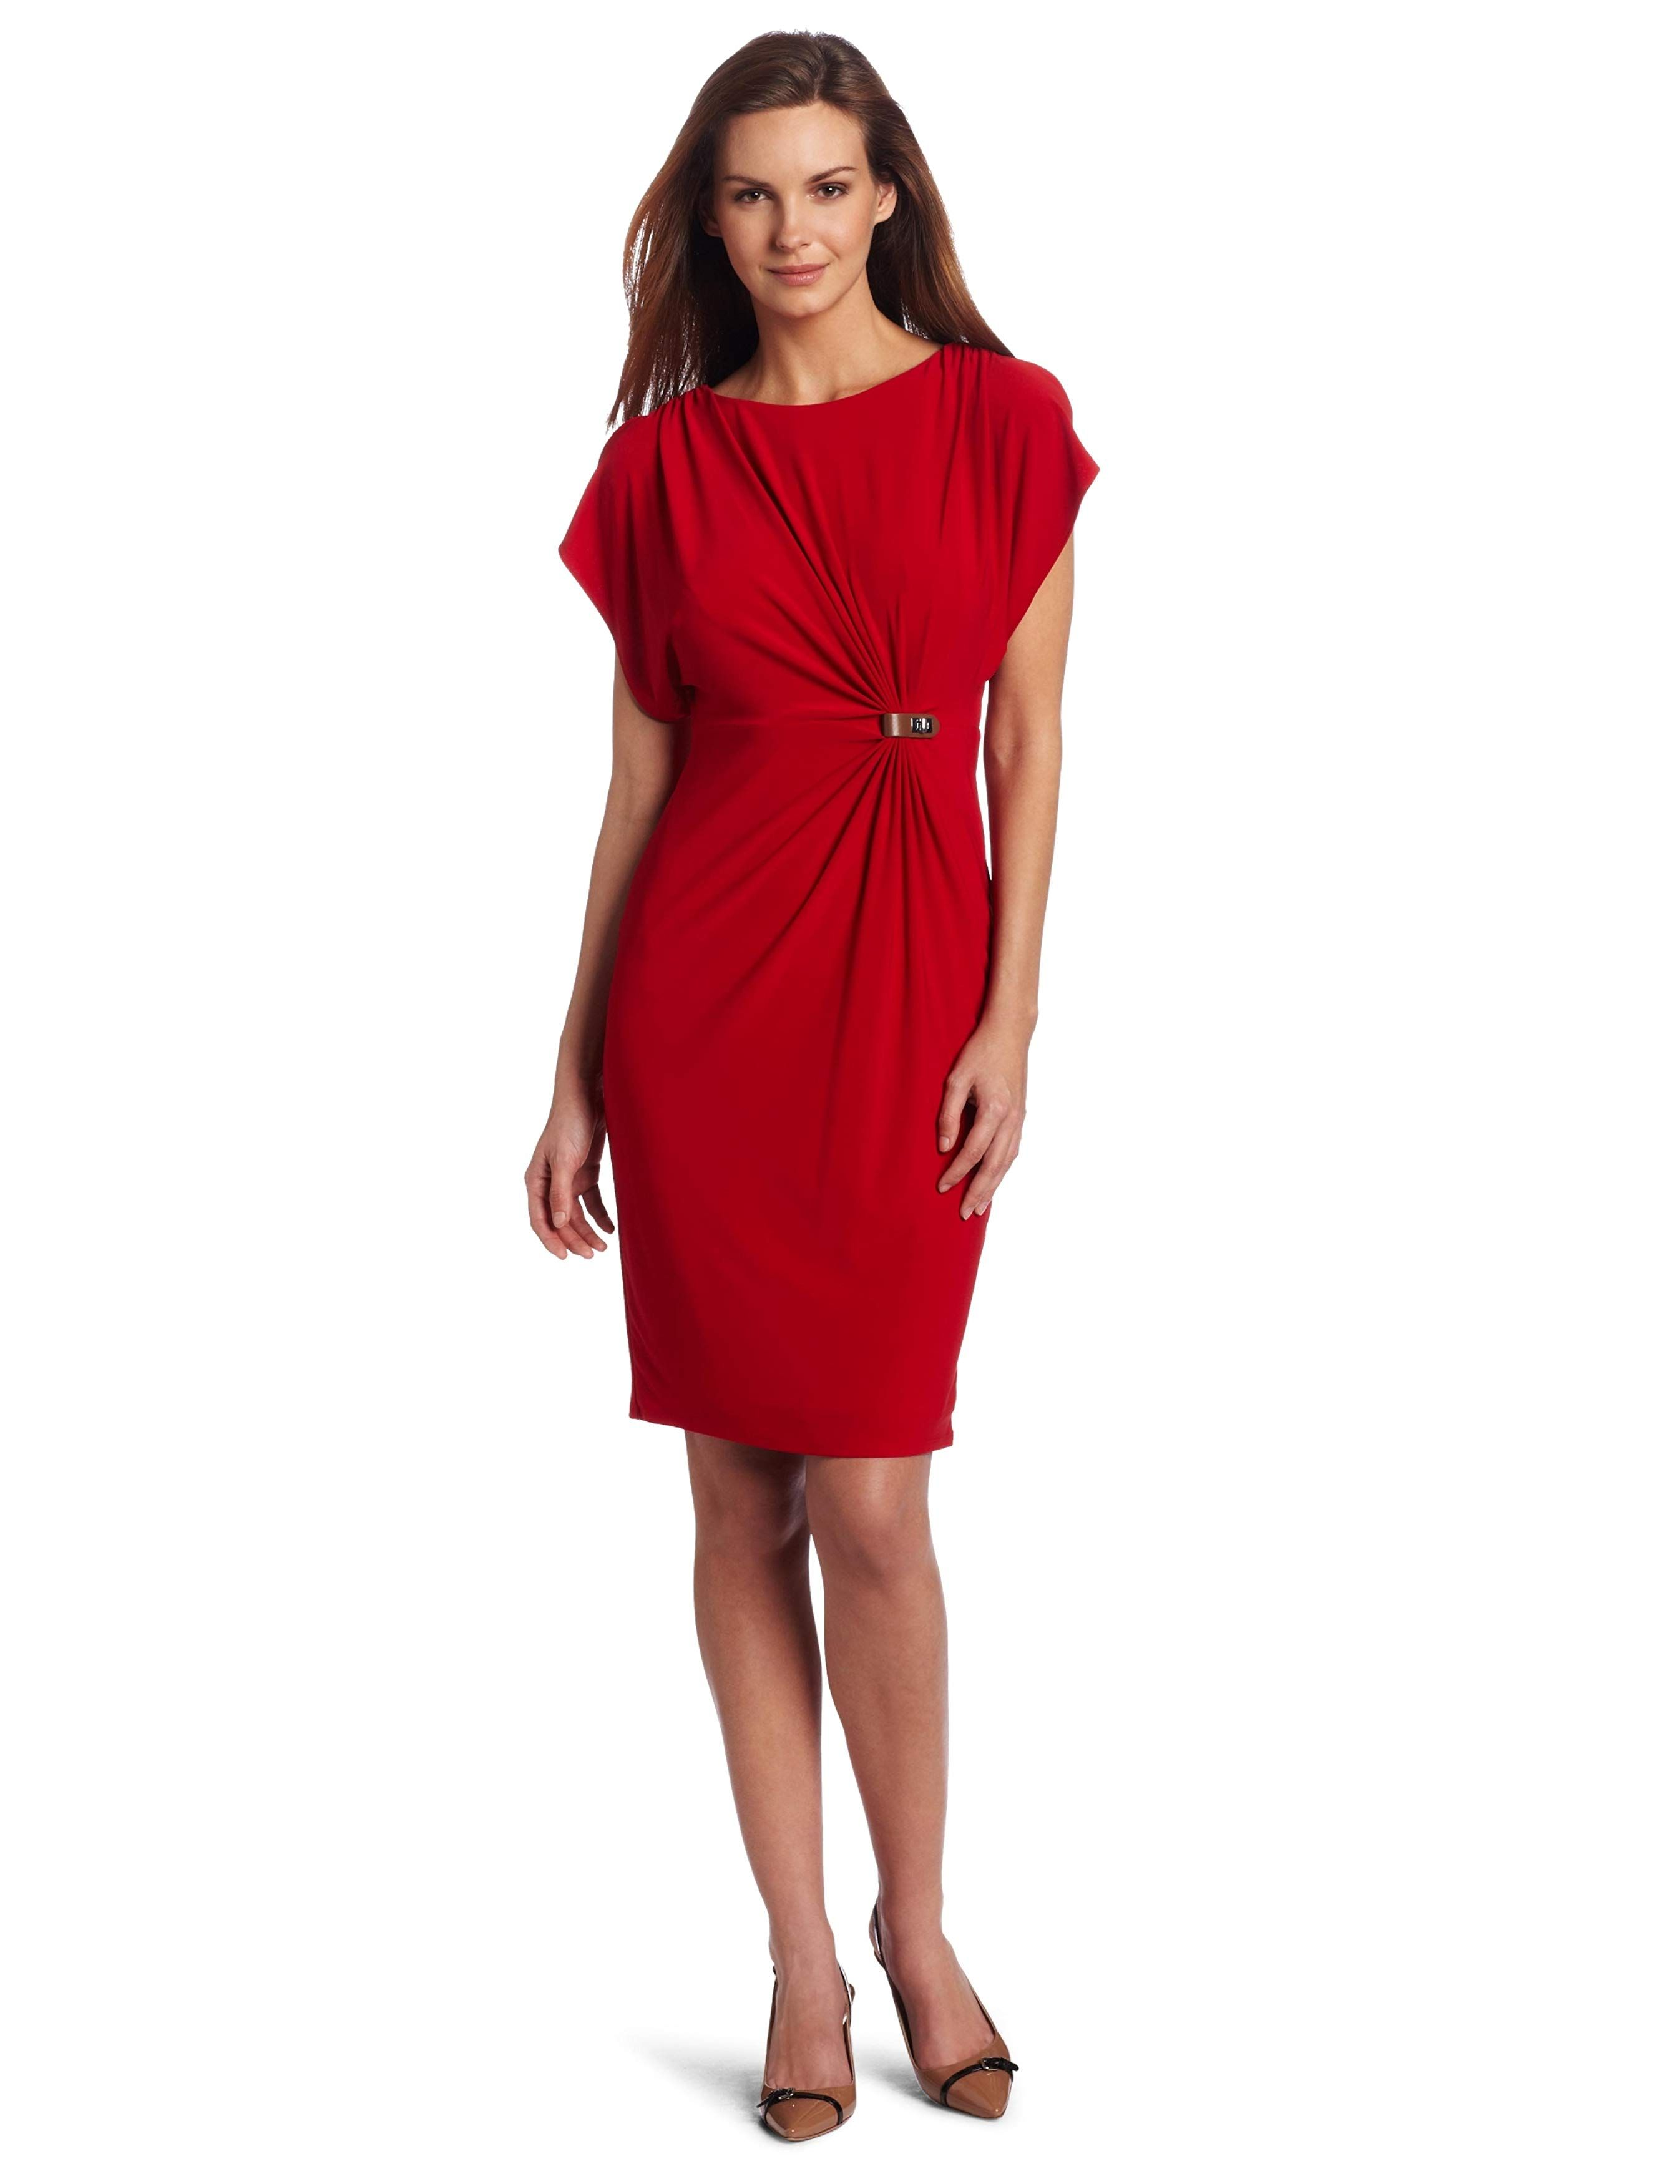 HSN Holiday Red Evening Dresses